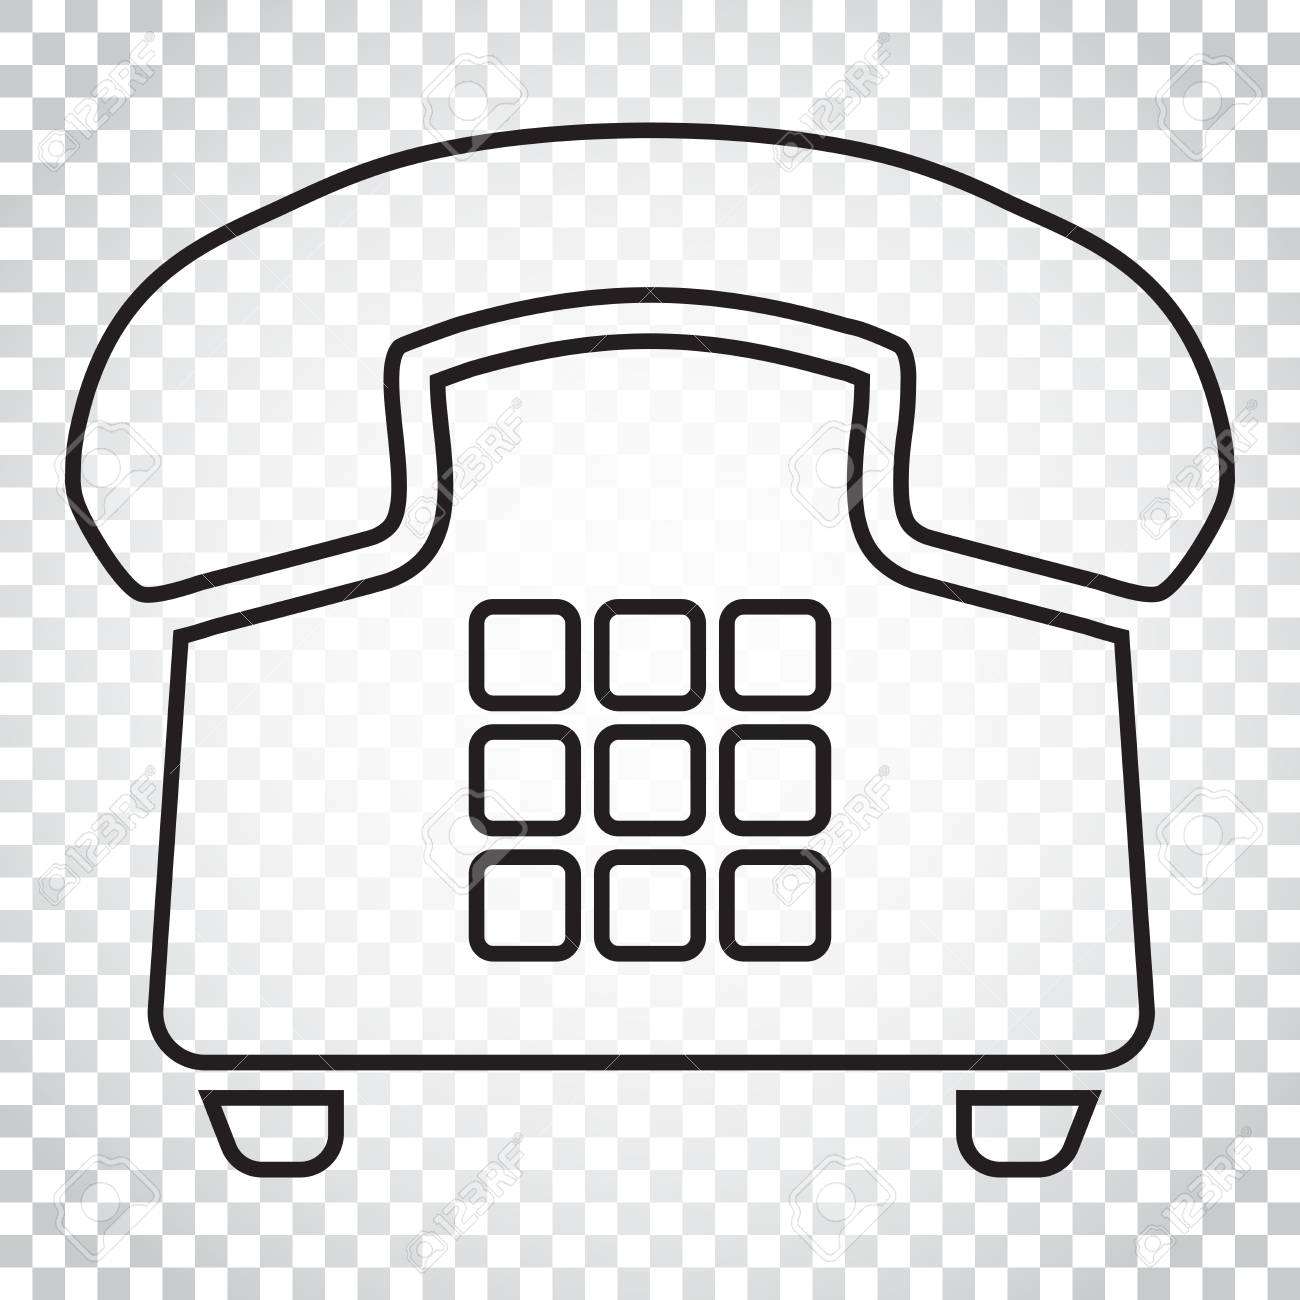 Phone vector icon in line style  Old vintage telephone symbol